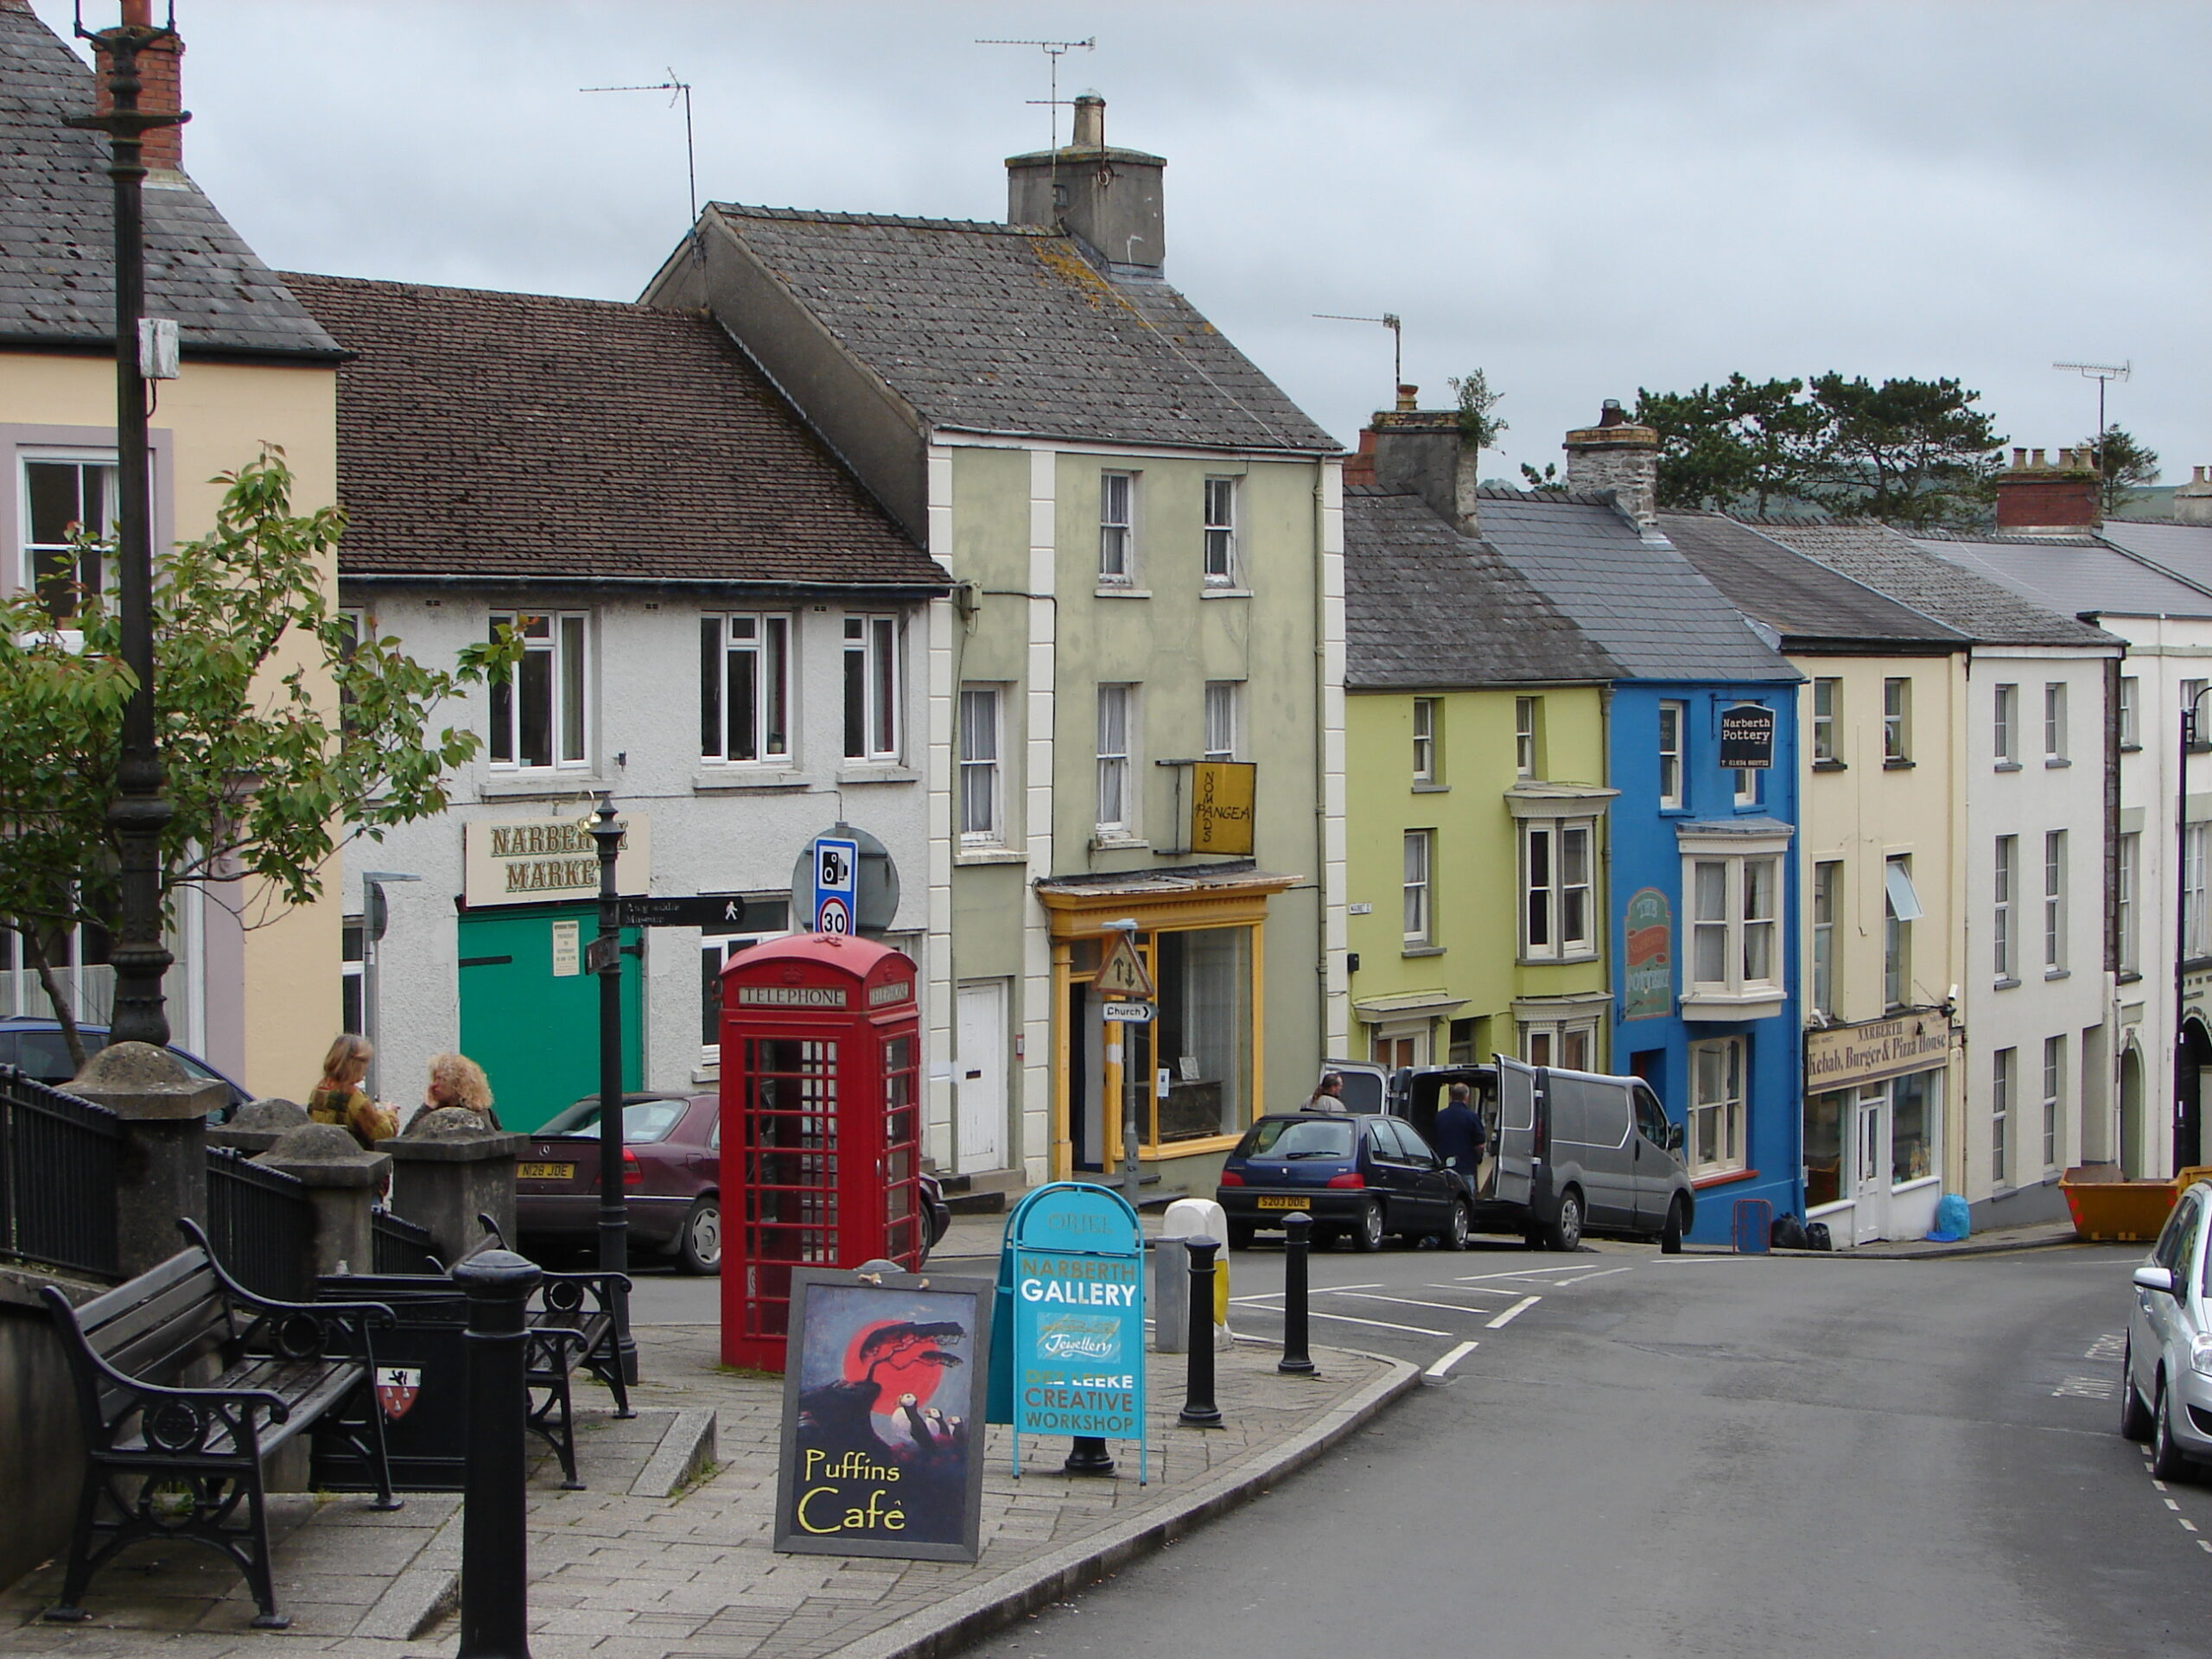 Narberth Town High Street